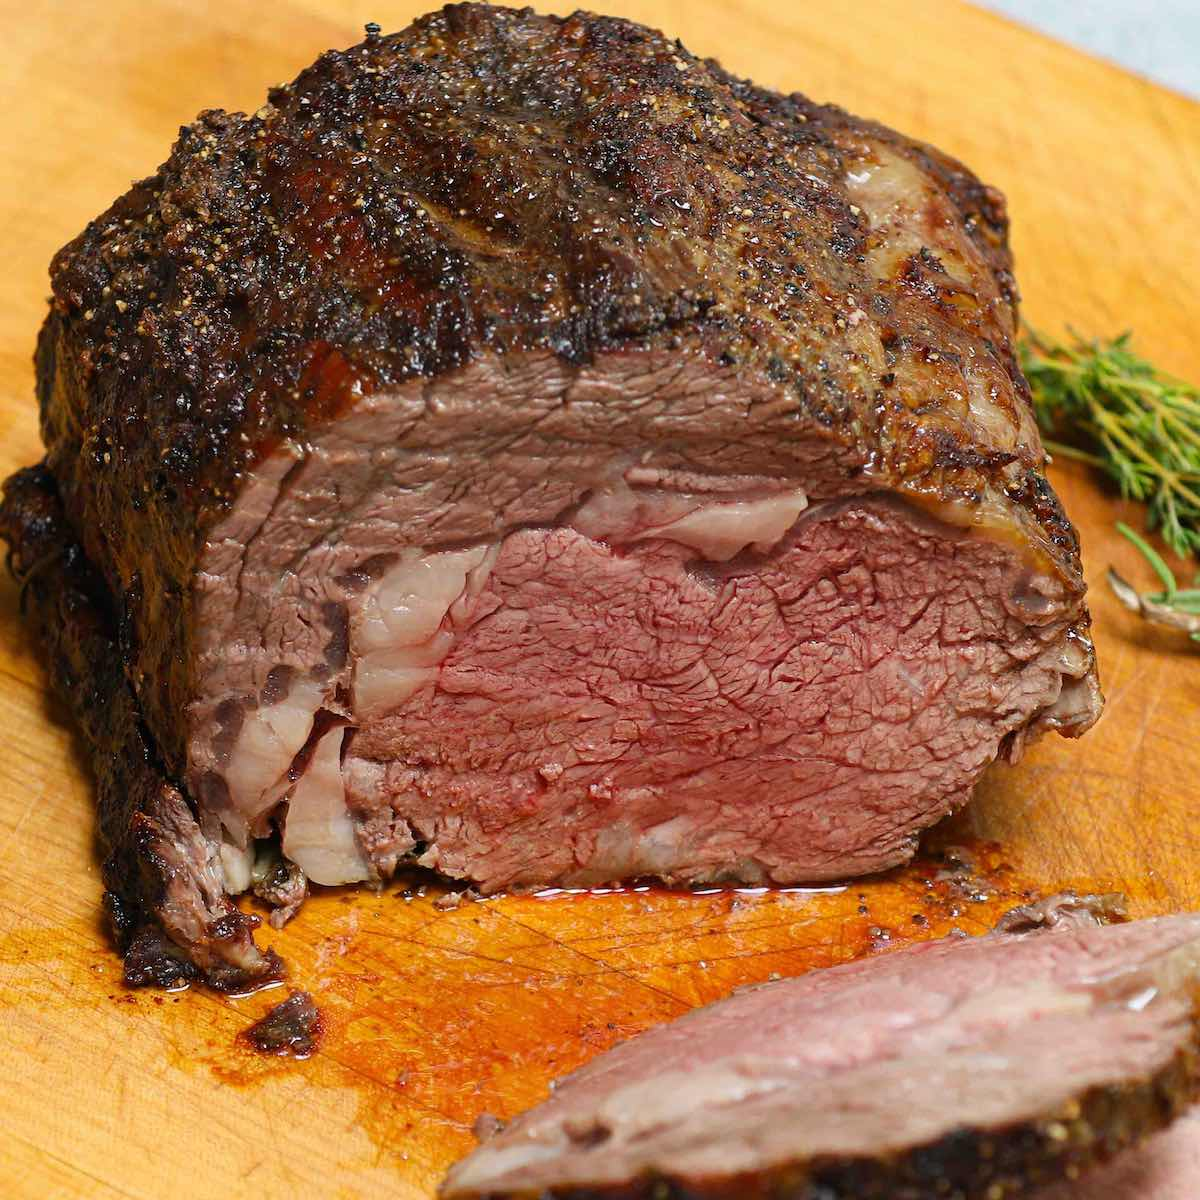 A serving of boneless prime rib with mashed potatoes, broccoli and horseradish